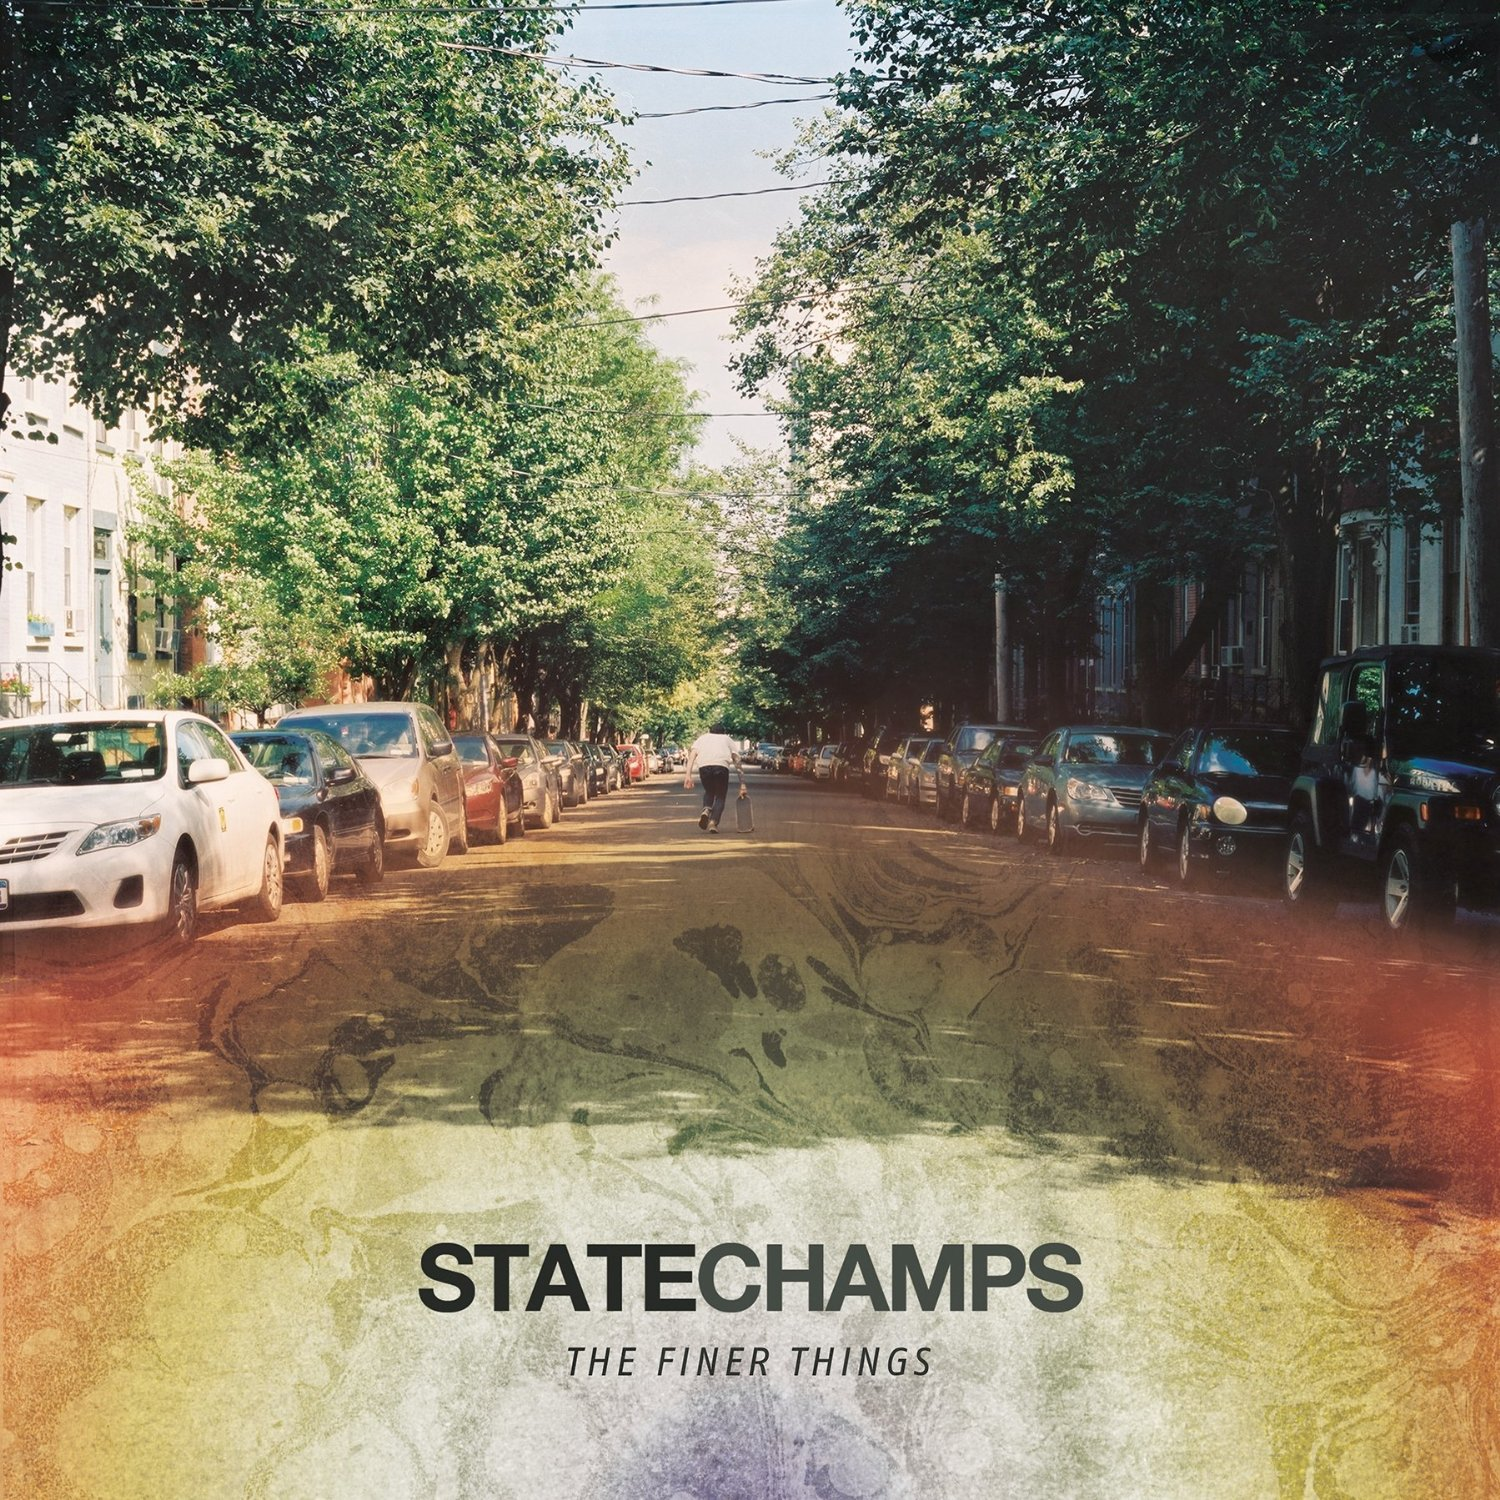 http://www.amazon.co.uk/The-Finer-Things-State-Champs/dp/B00EELPN8U